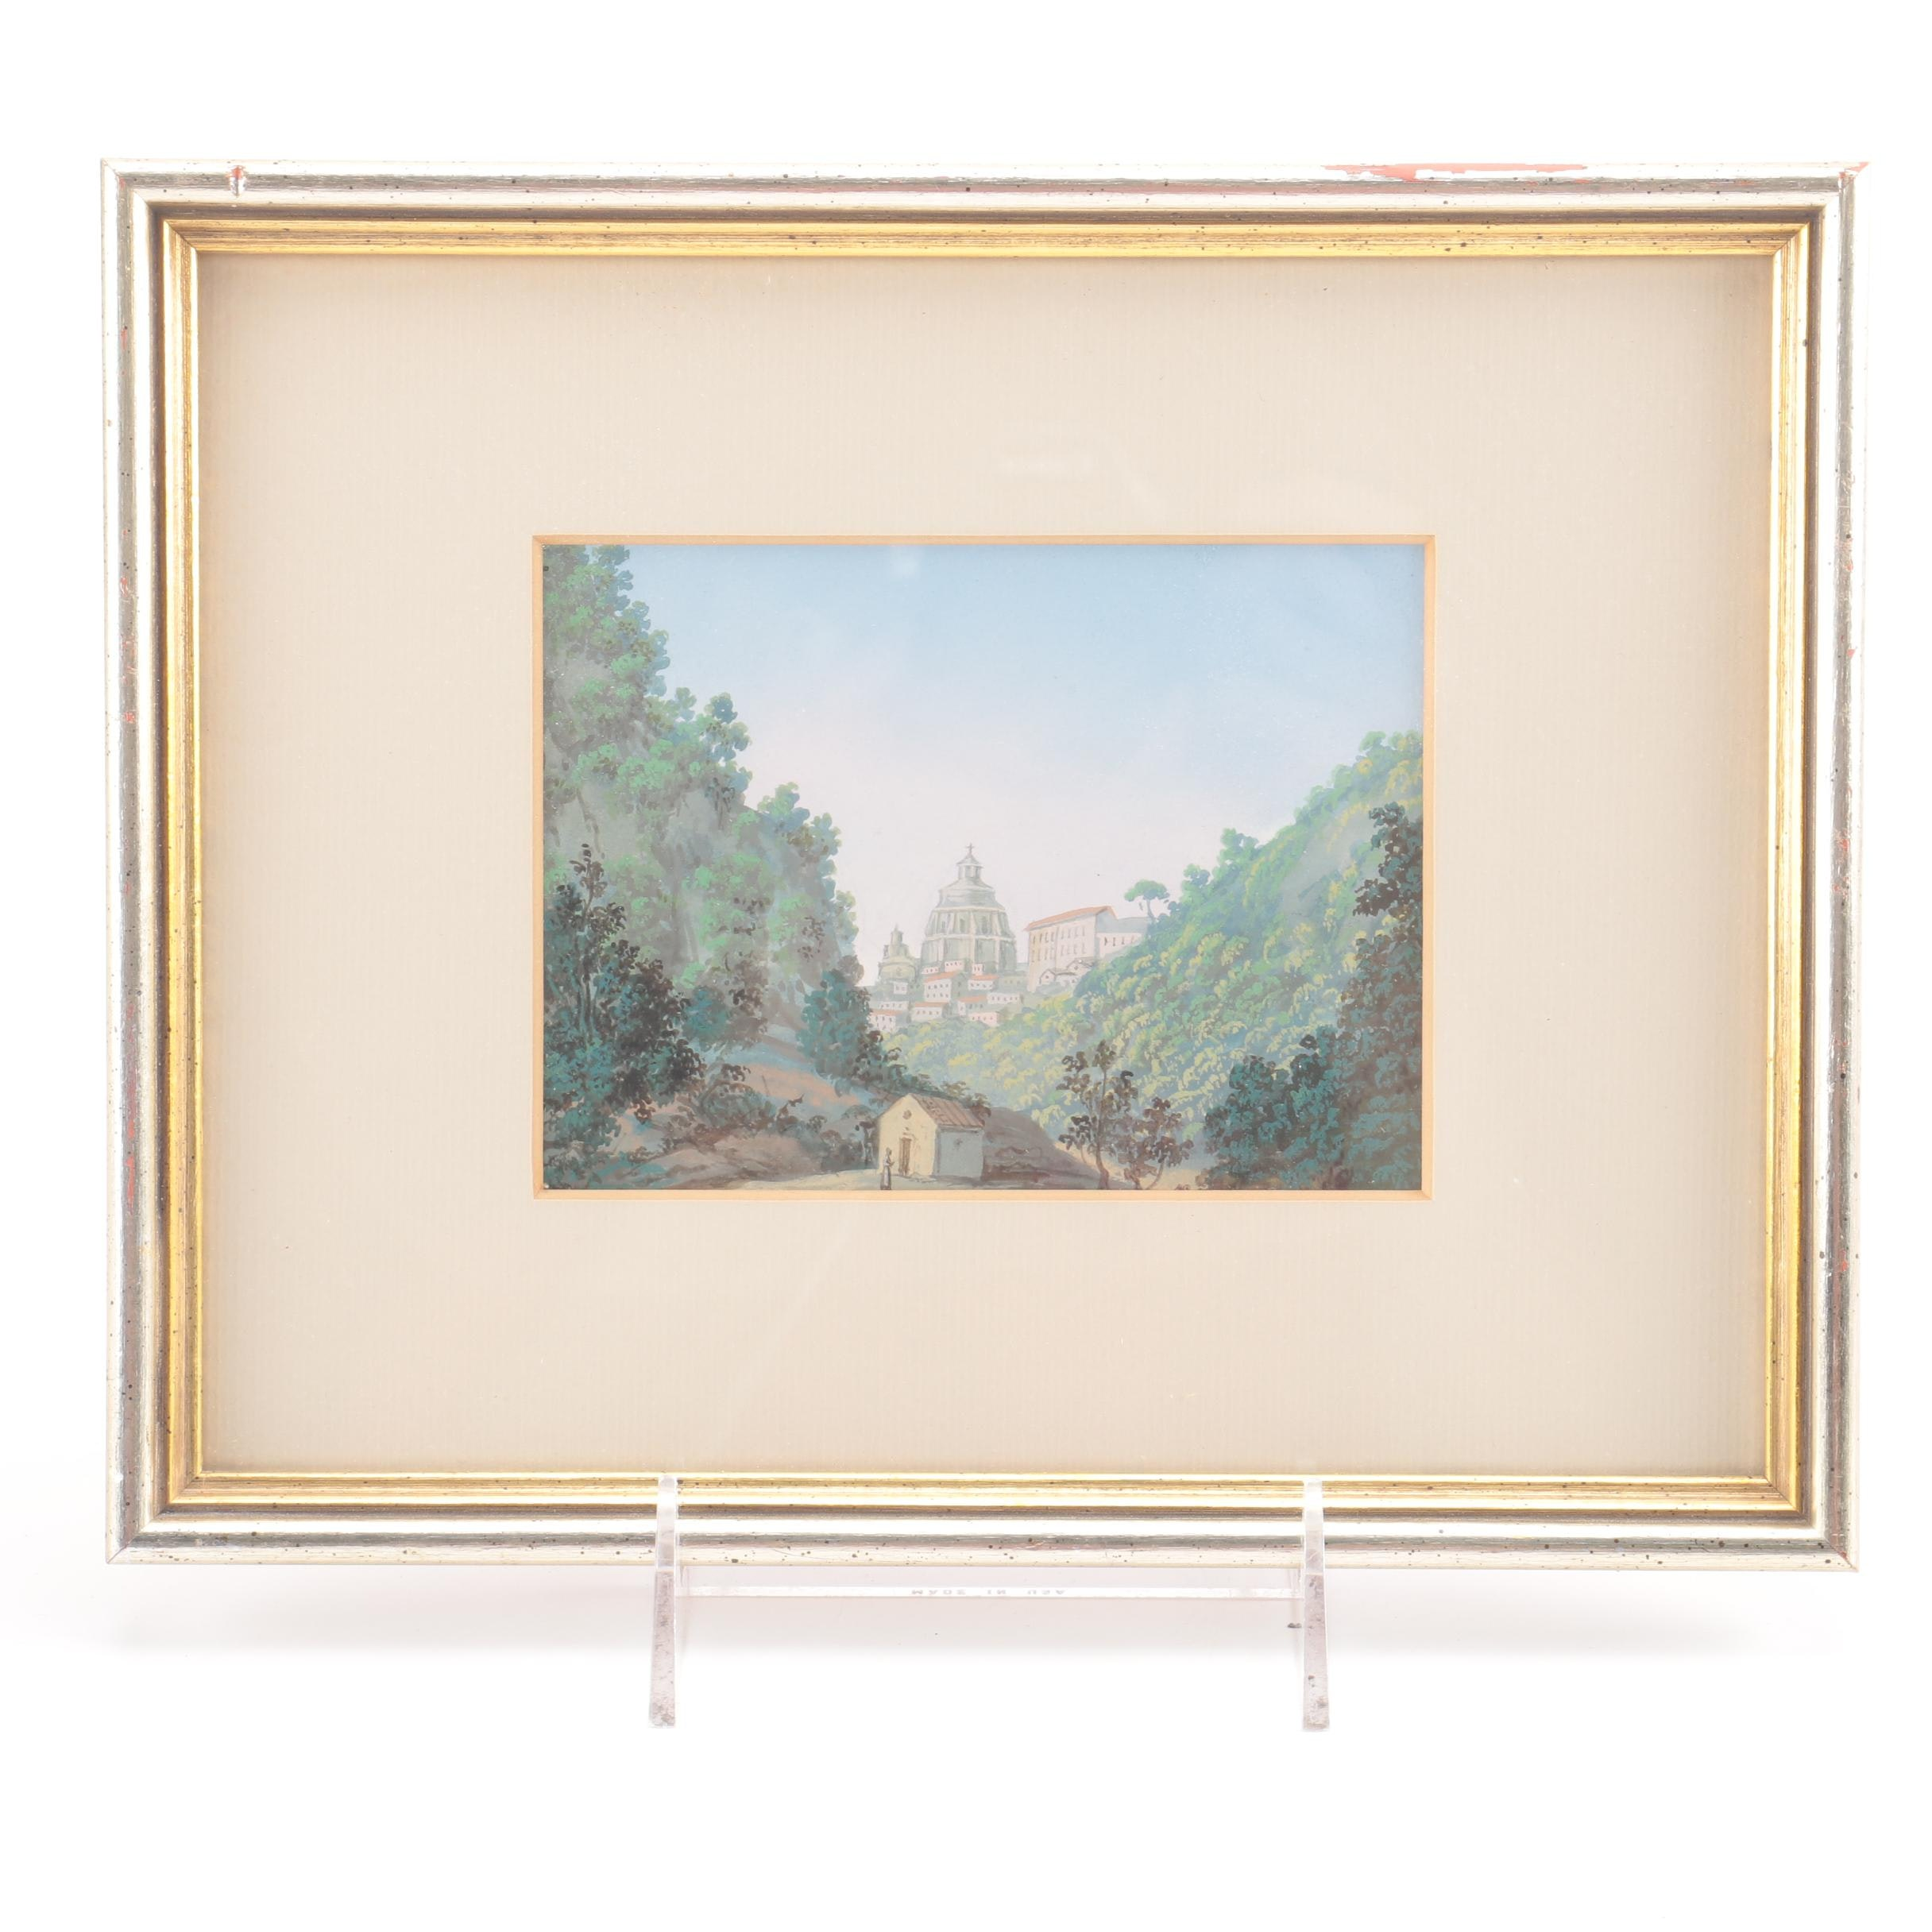 Framed Gouache Painting on Paper of a Landscape